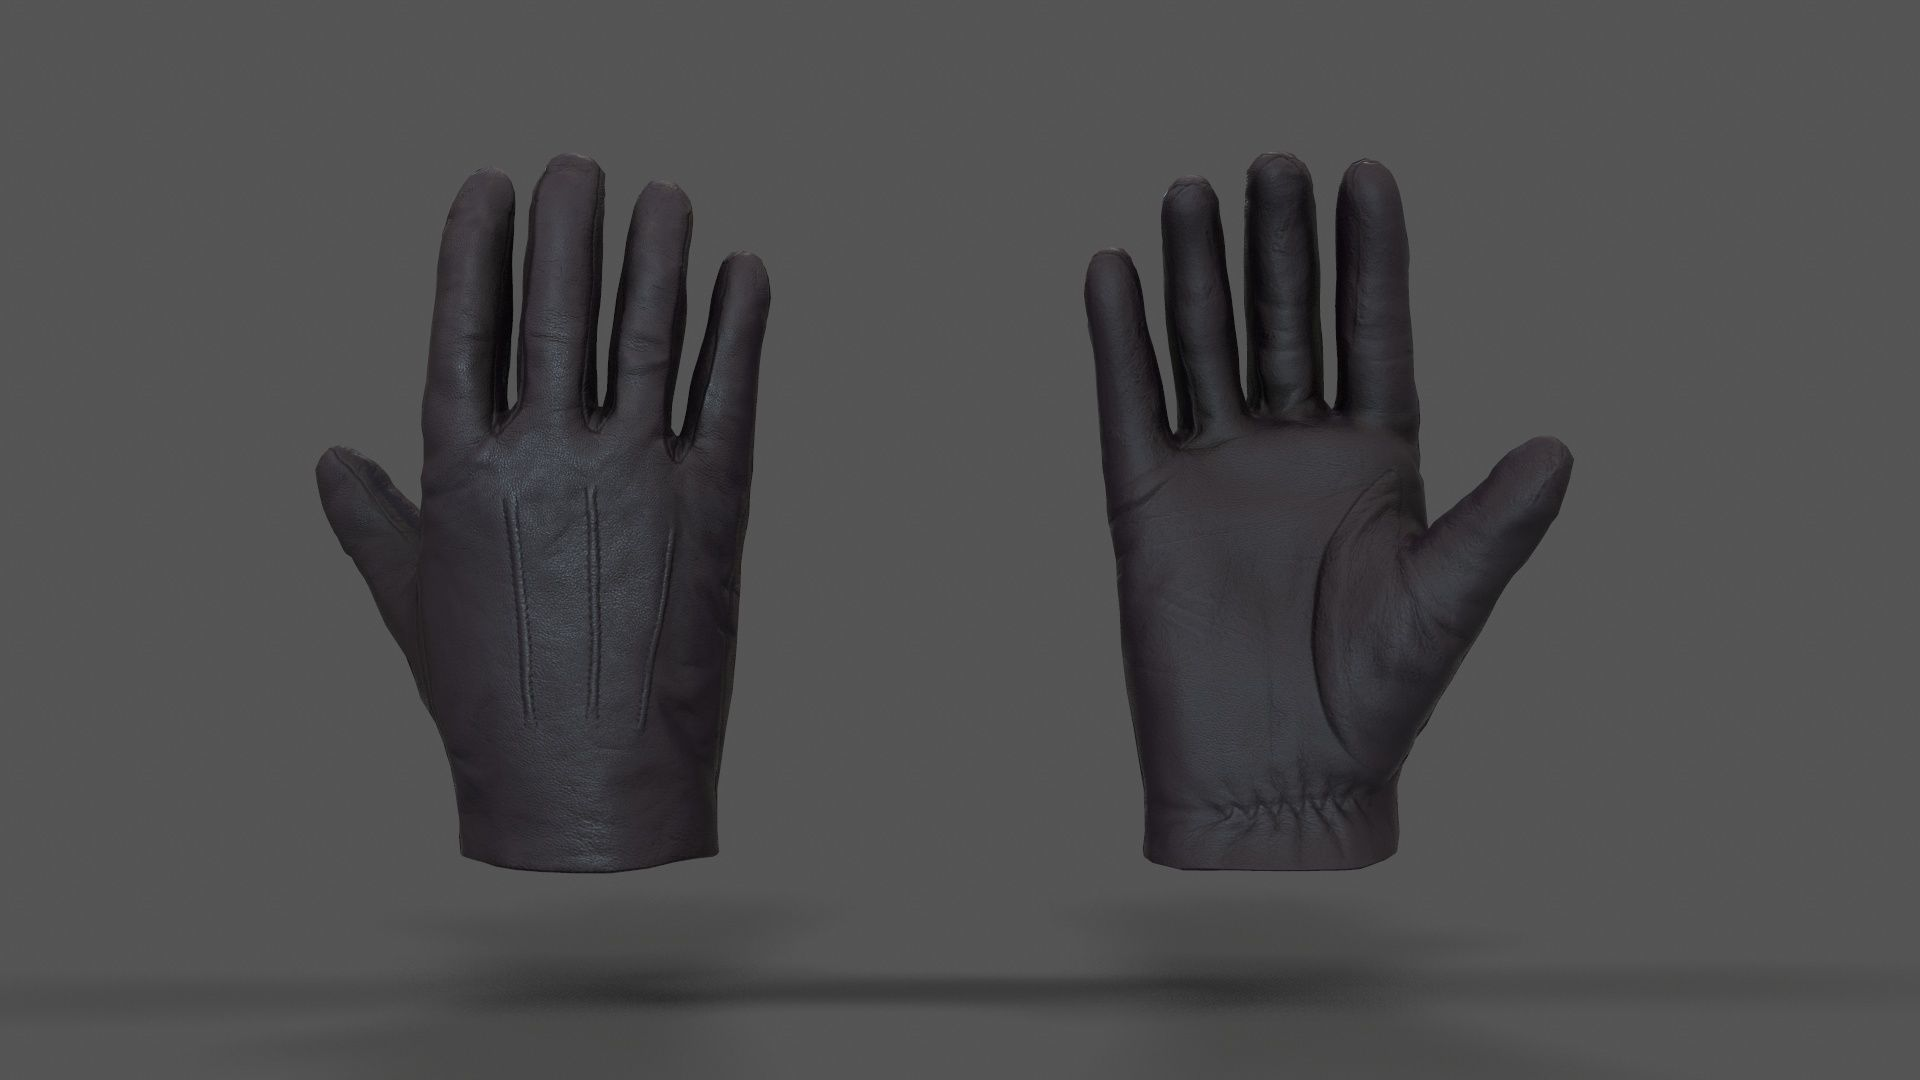 VR Hands - Leather Glove